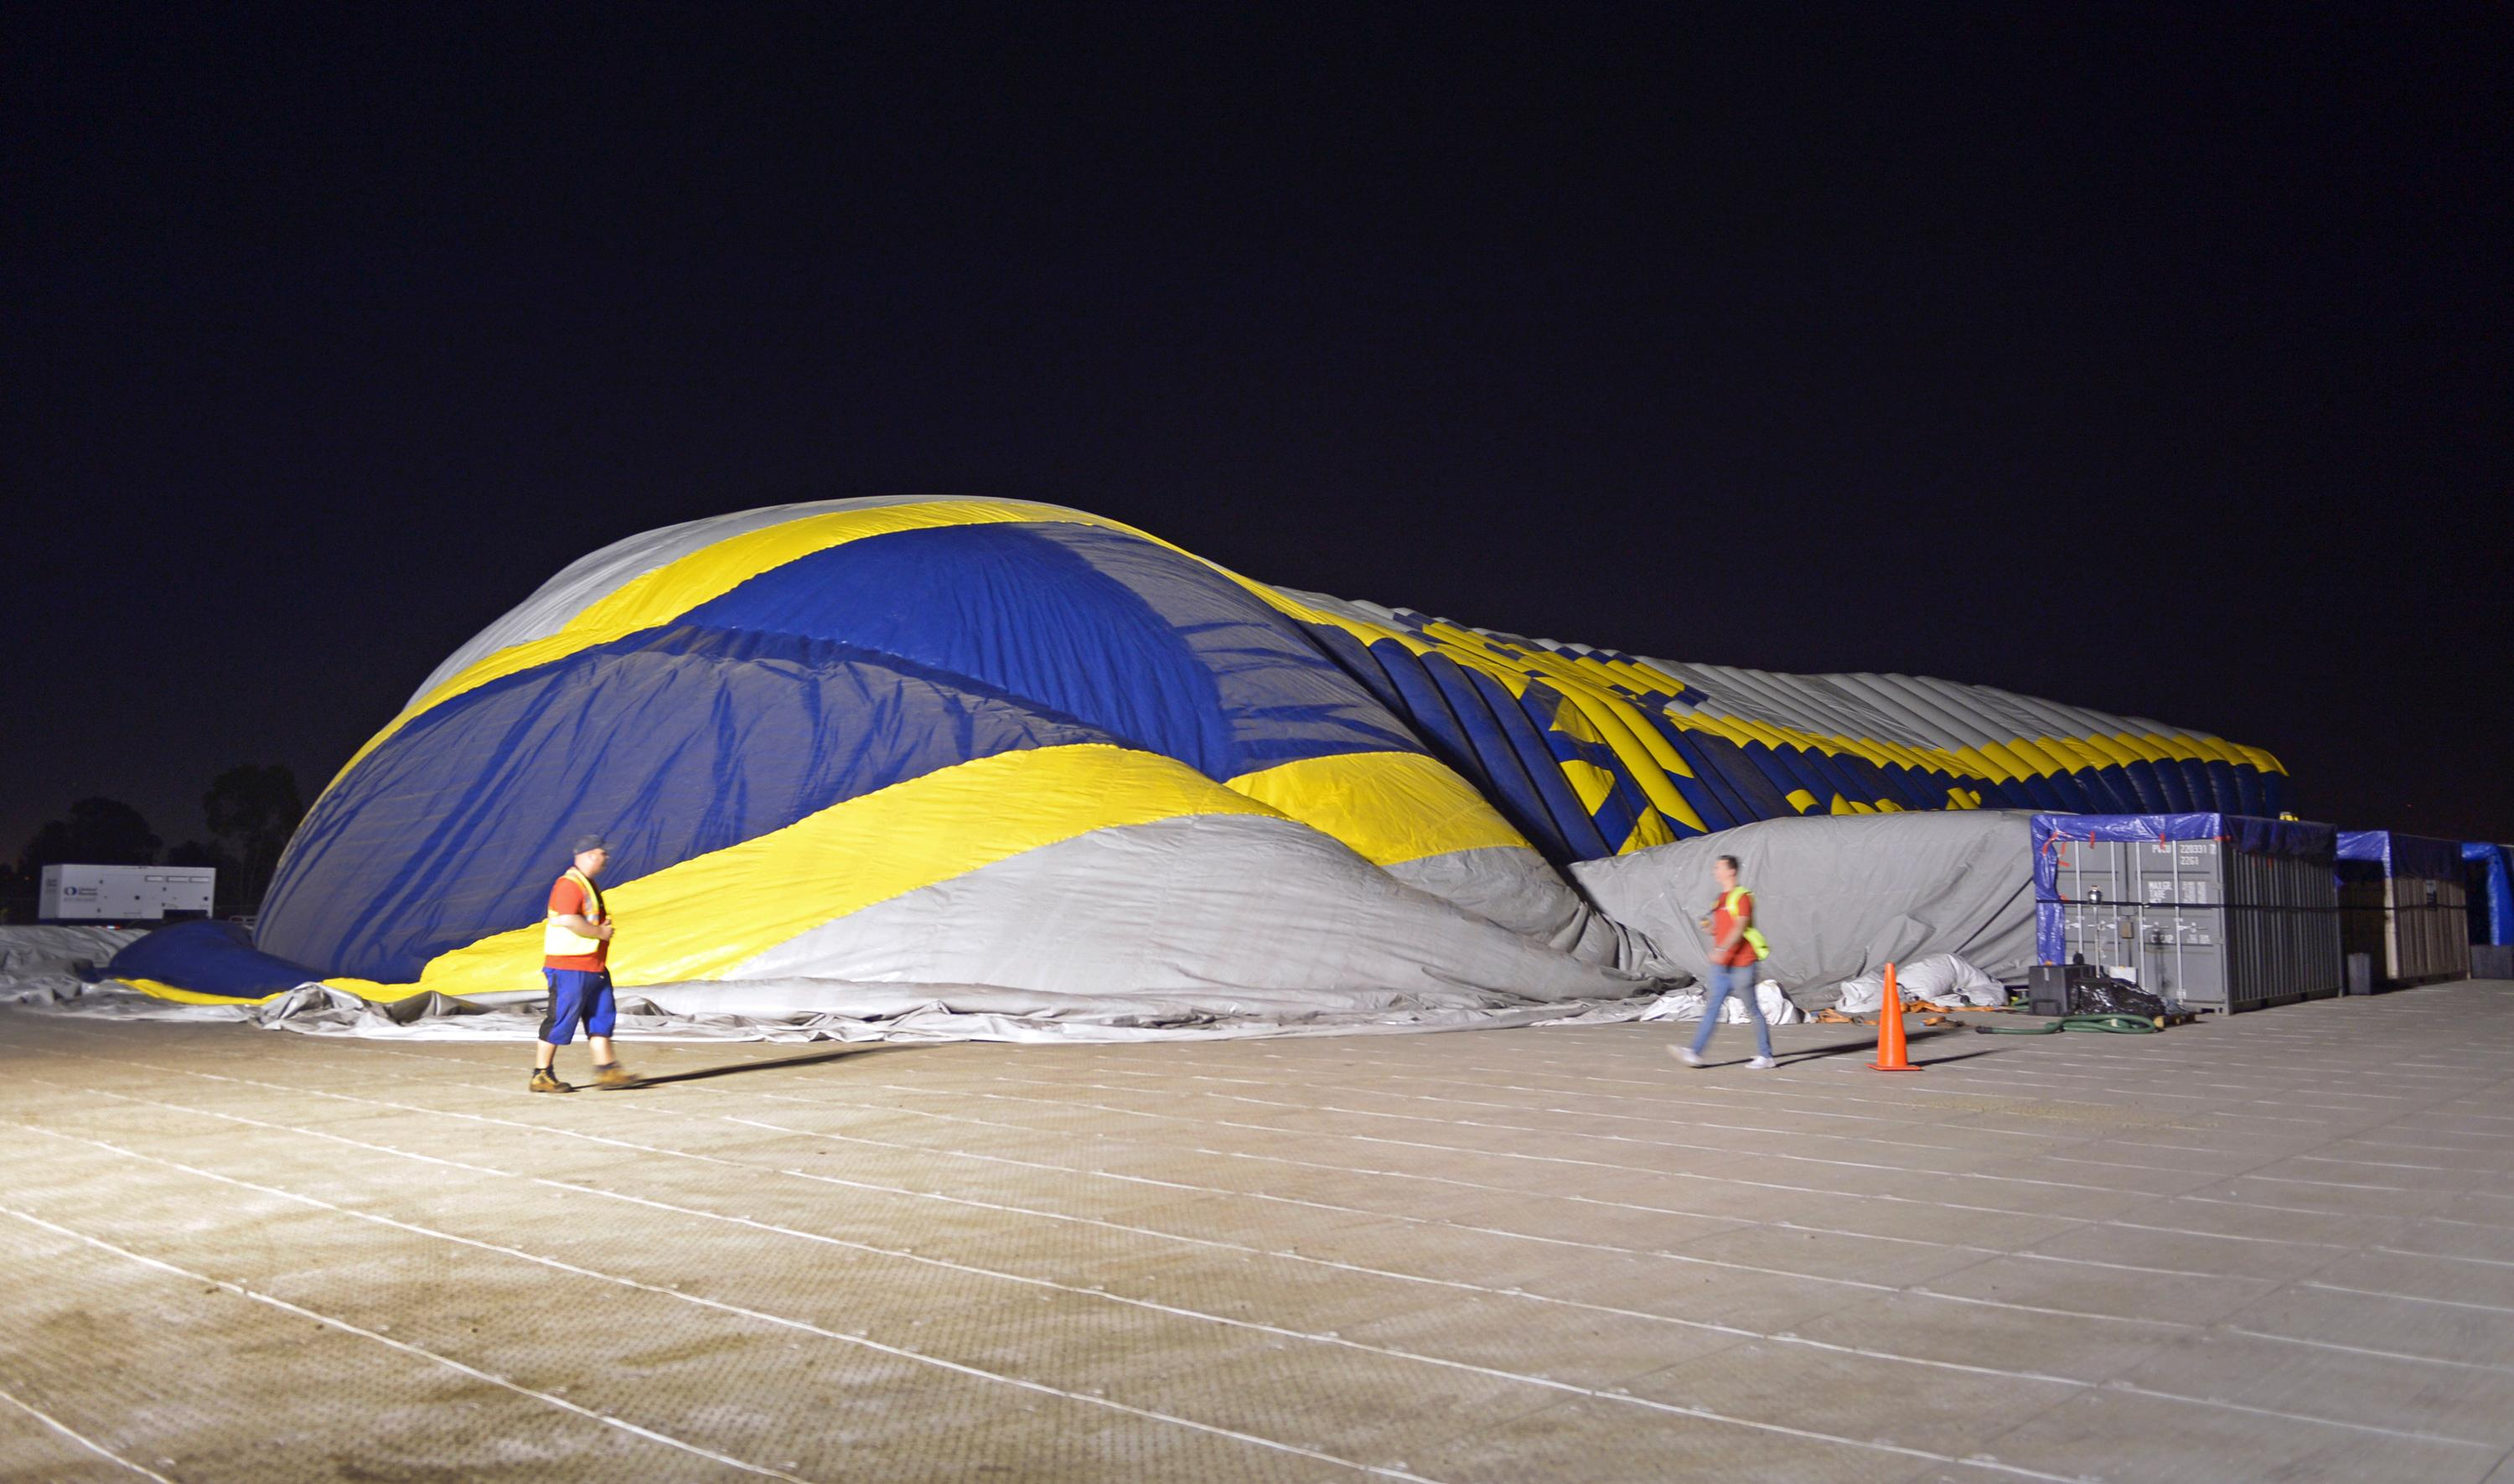 This photo provided by the Goodyear Tire & Rubber Co. shows a stage of the inflation of a giant inflatable hangar that will be the permanent home of one of the company's new semi-rigid airships, Wednesday, Dec. 13, 2017 in Carson, Calif. The building standing nine stories tall and stretching the length of a football field went up early Wednesday along Interstate 405 south of Los Angeles. (Goodyear Tire & Rubber Co. via AP)